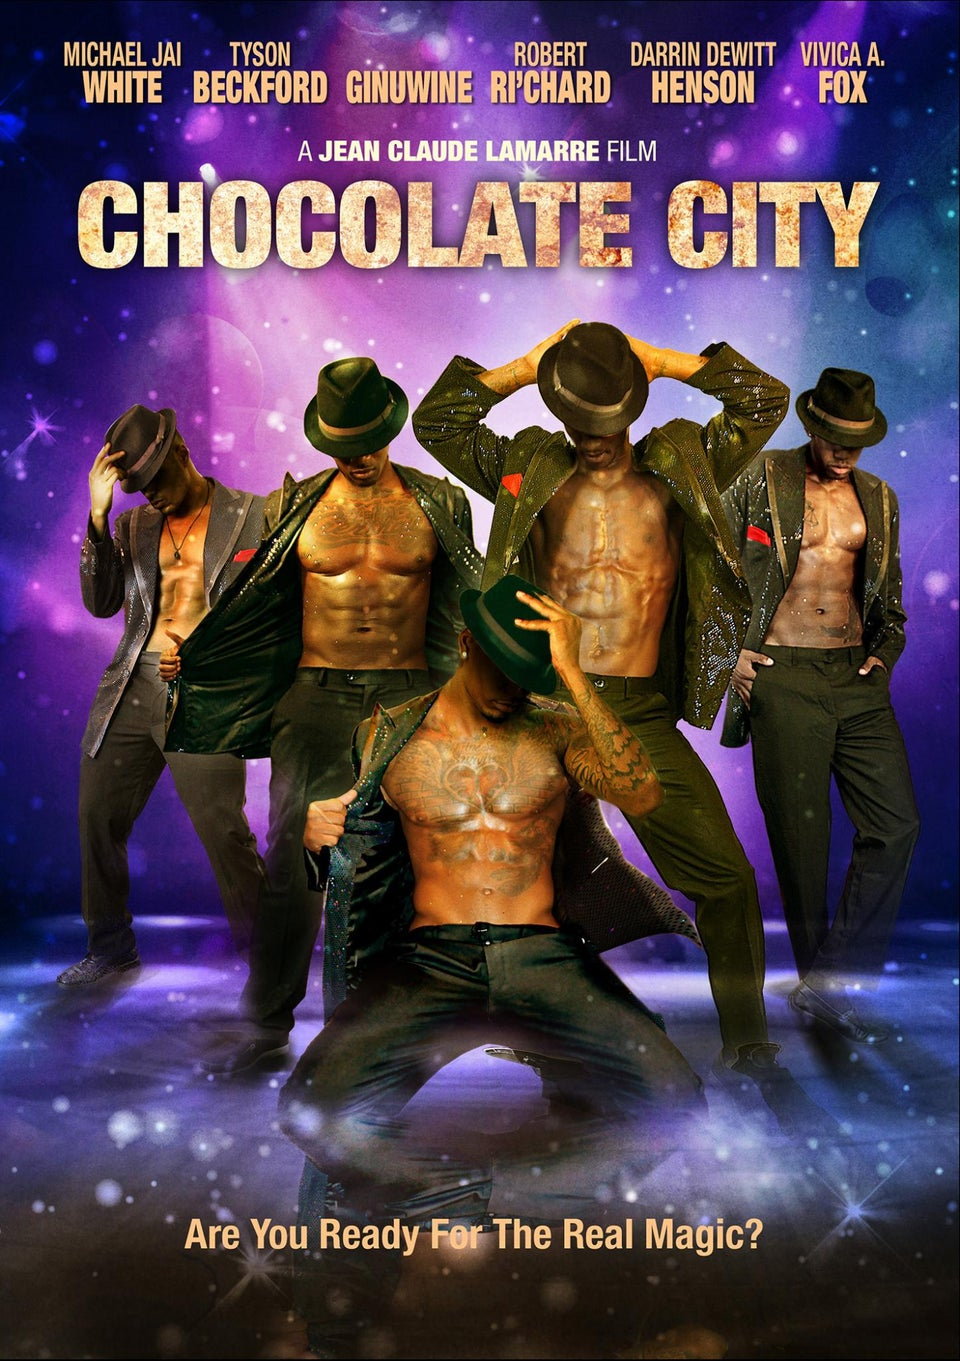 BET to Air TV Premiere of 'Chocolate City'